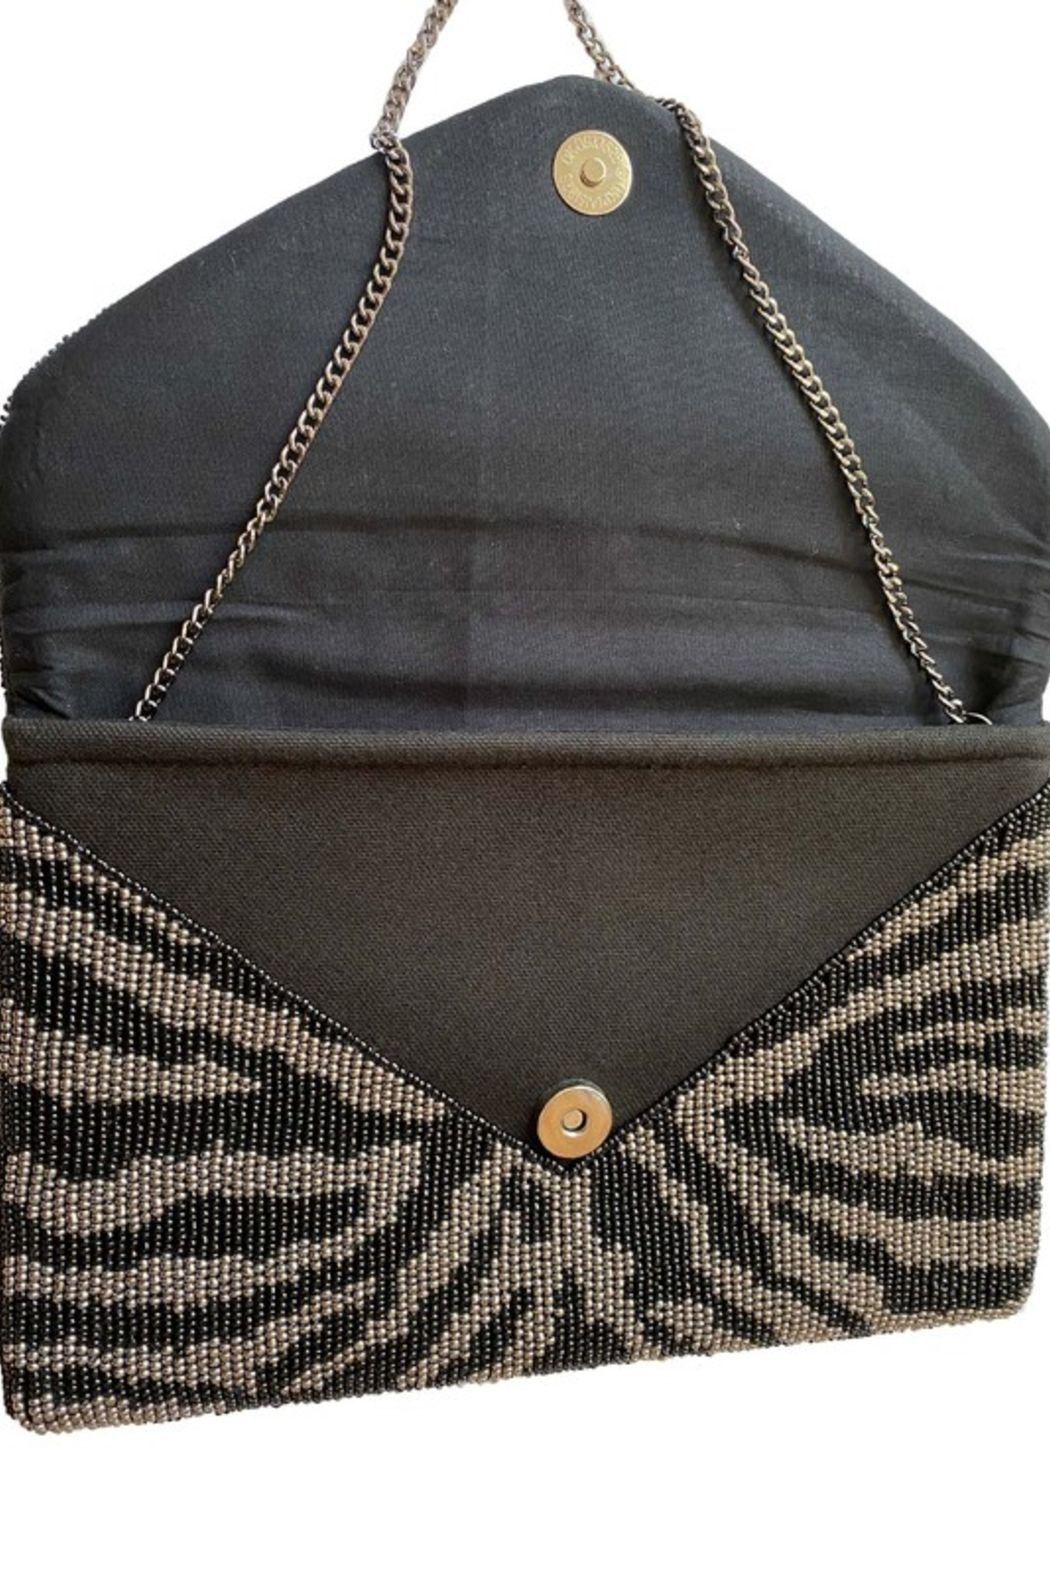 Ole Animal Print Clutch - Front Full Image